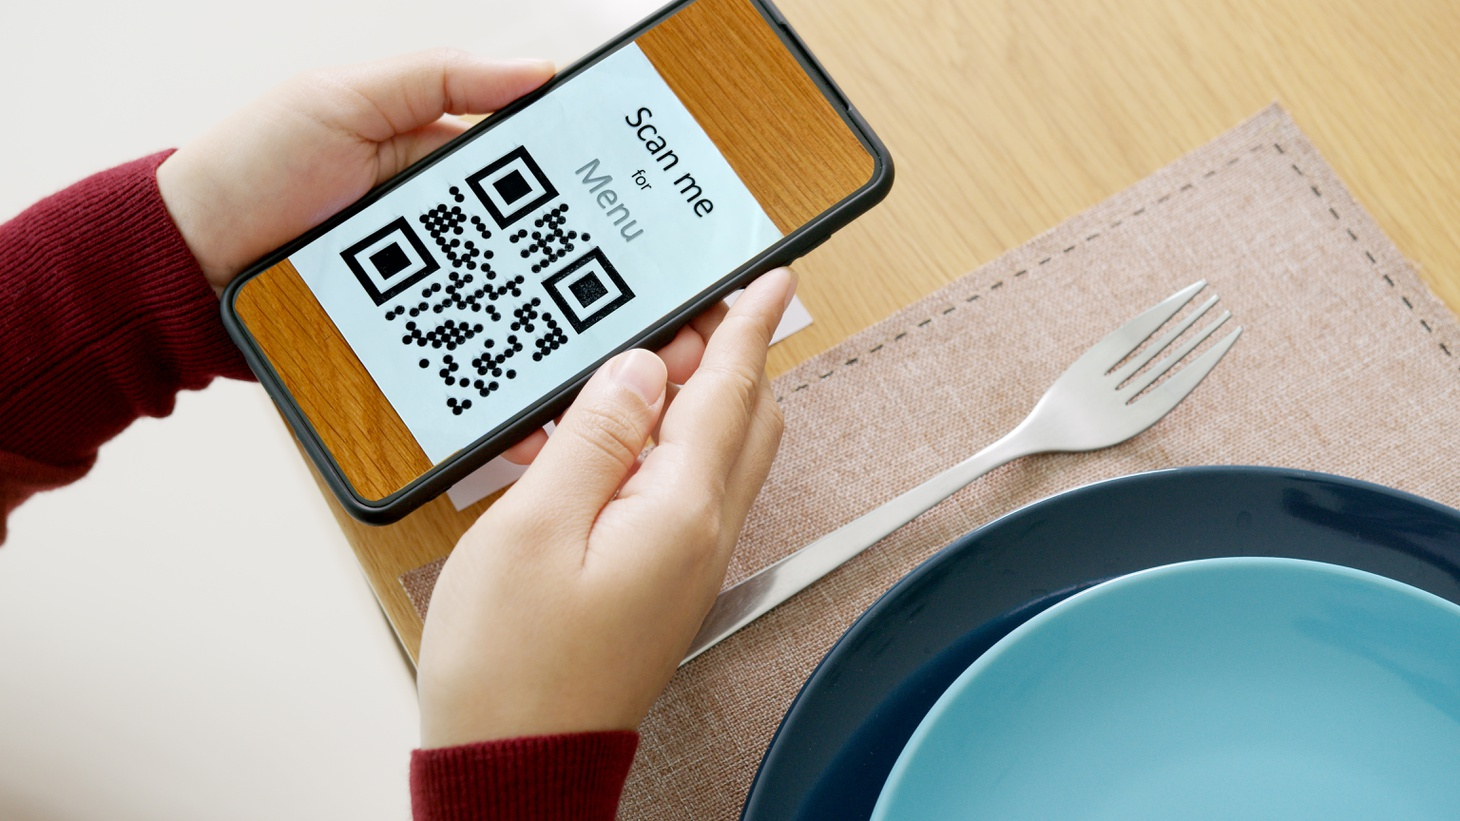 QR codes are making pandemic dining easier, but they're also creating new opportunities for businesses to track user data.